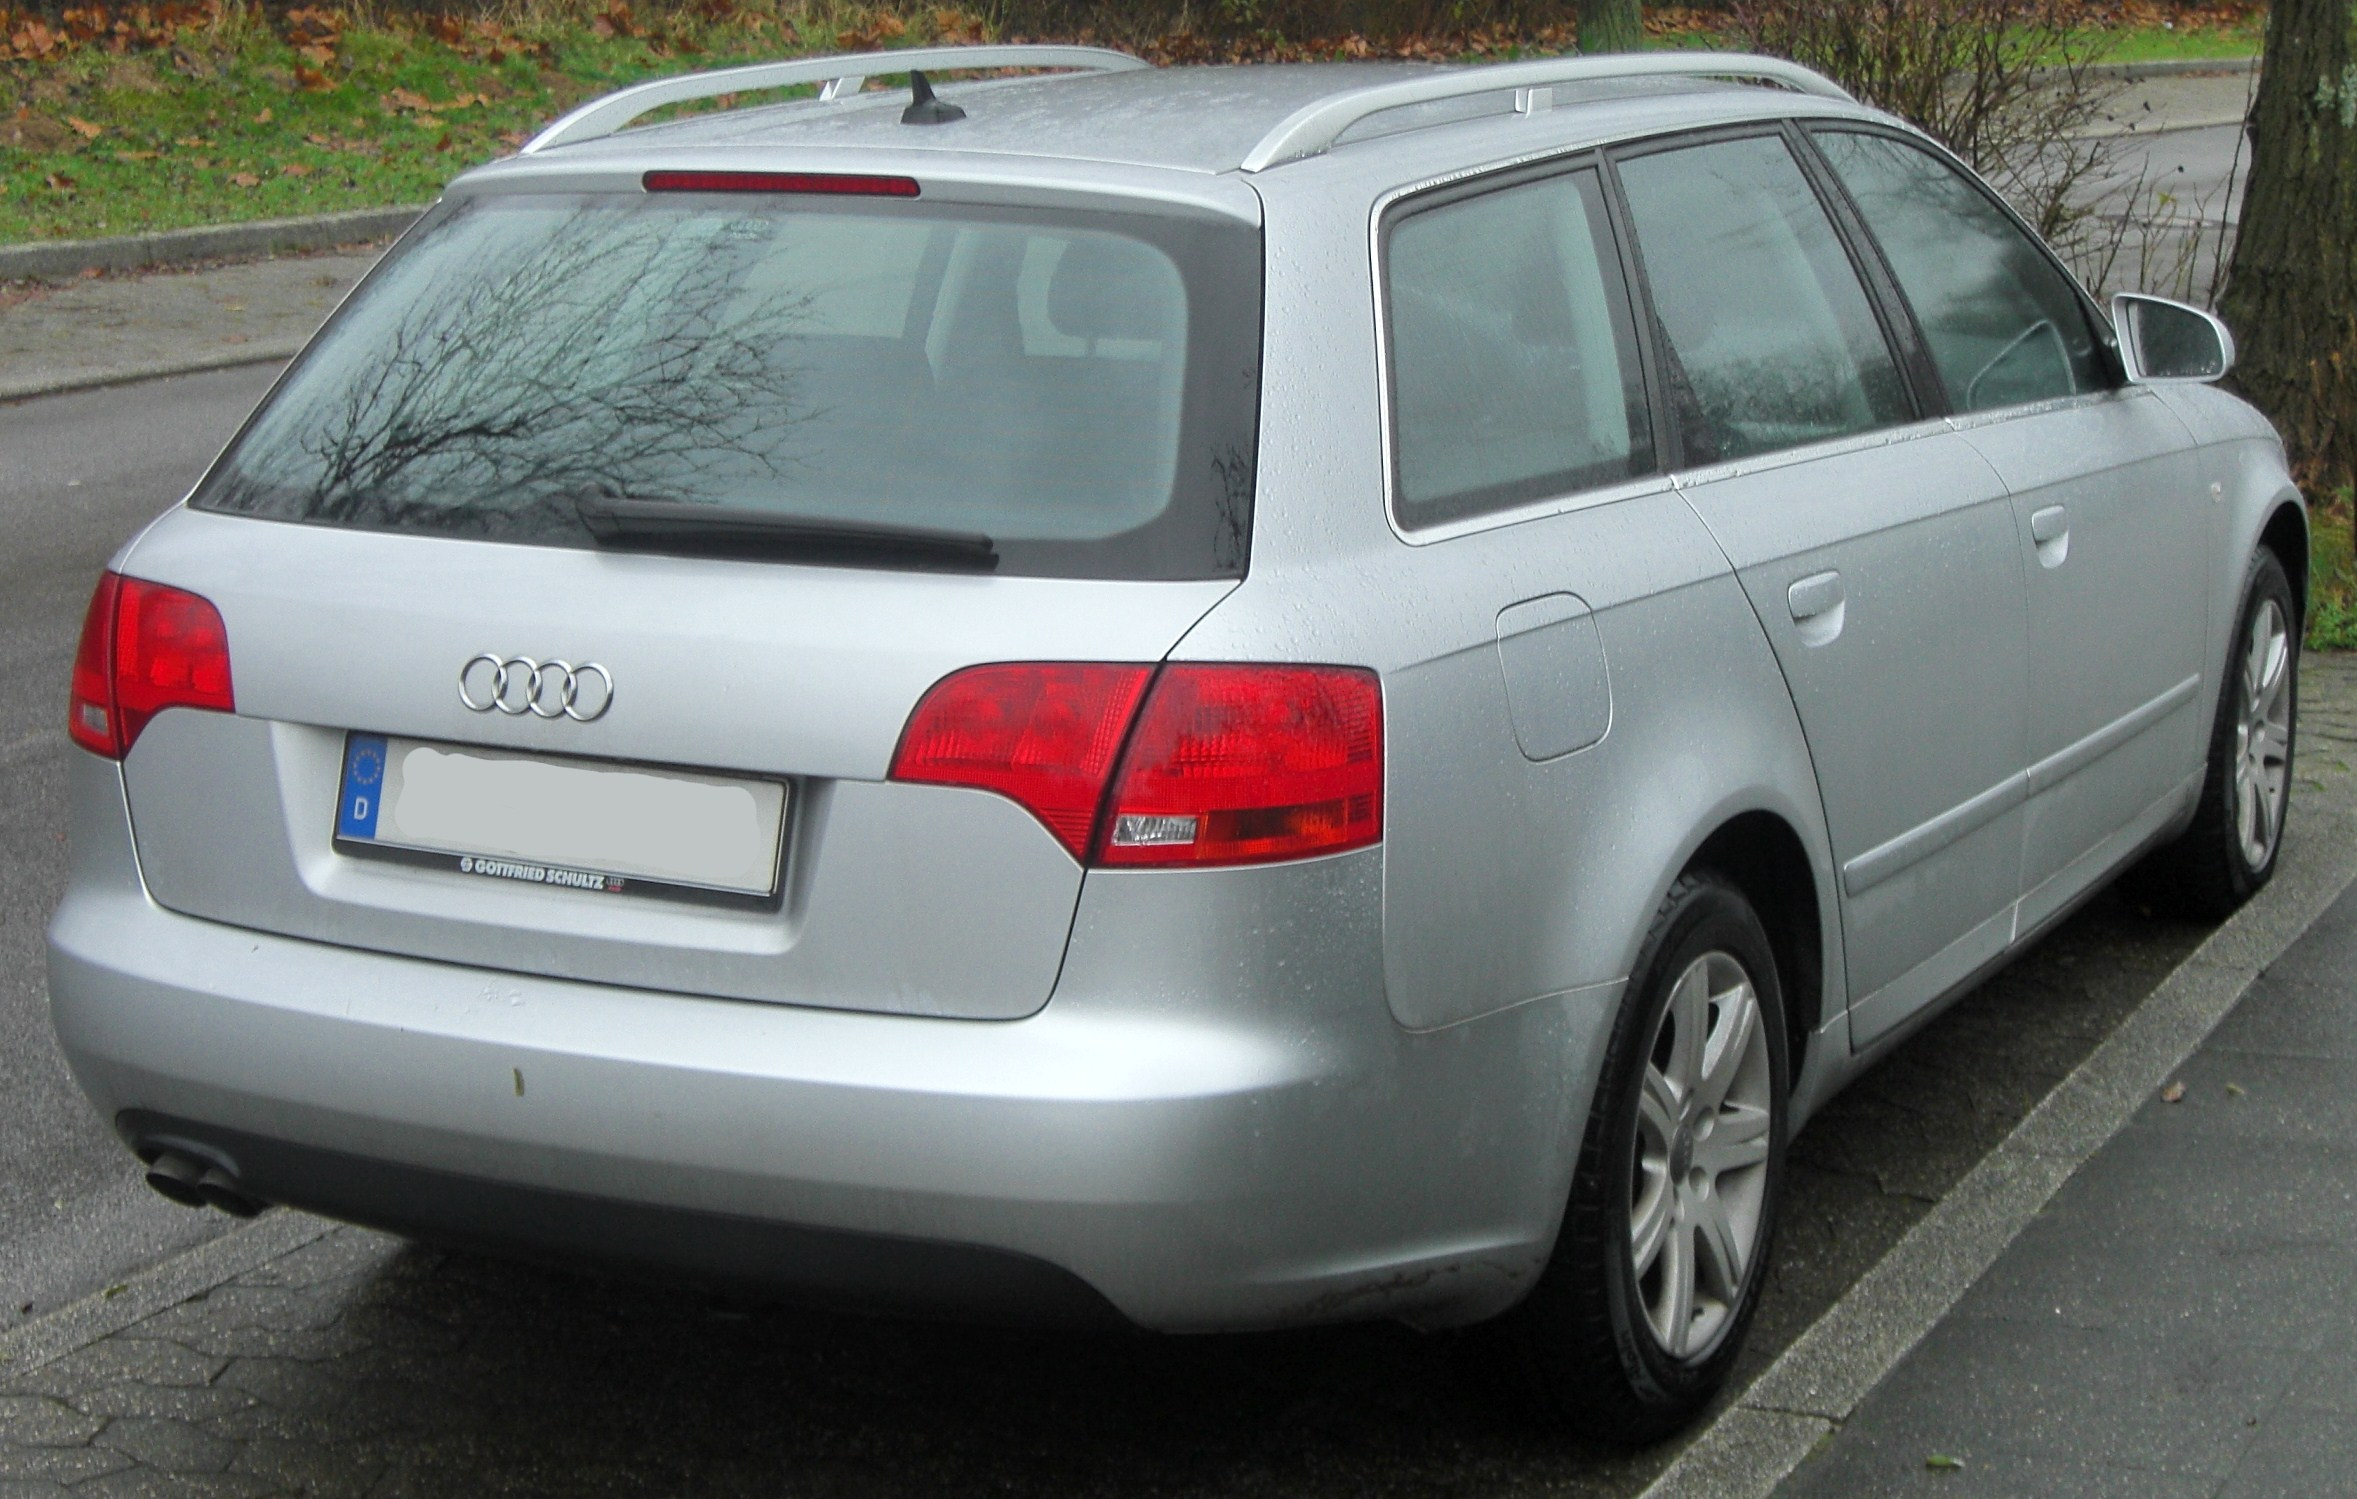 Fileaudi A4 B7 Avant Facelift 20042008 20 Tdi Rear Mjjpg